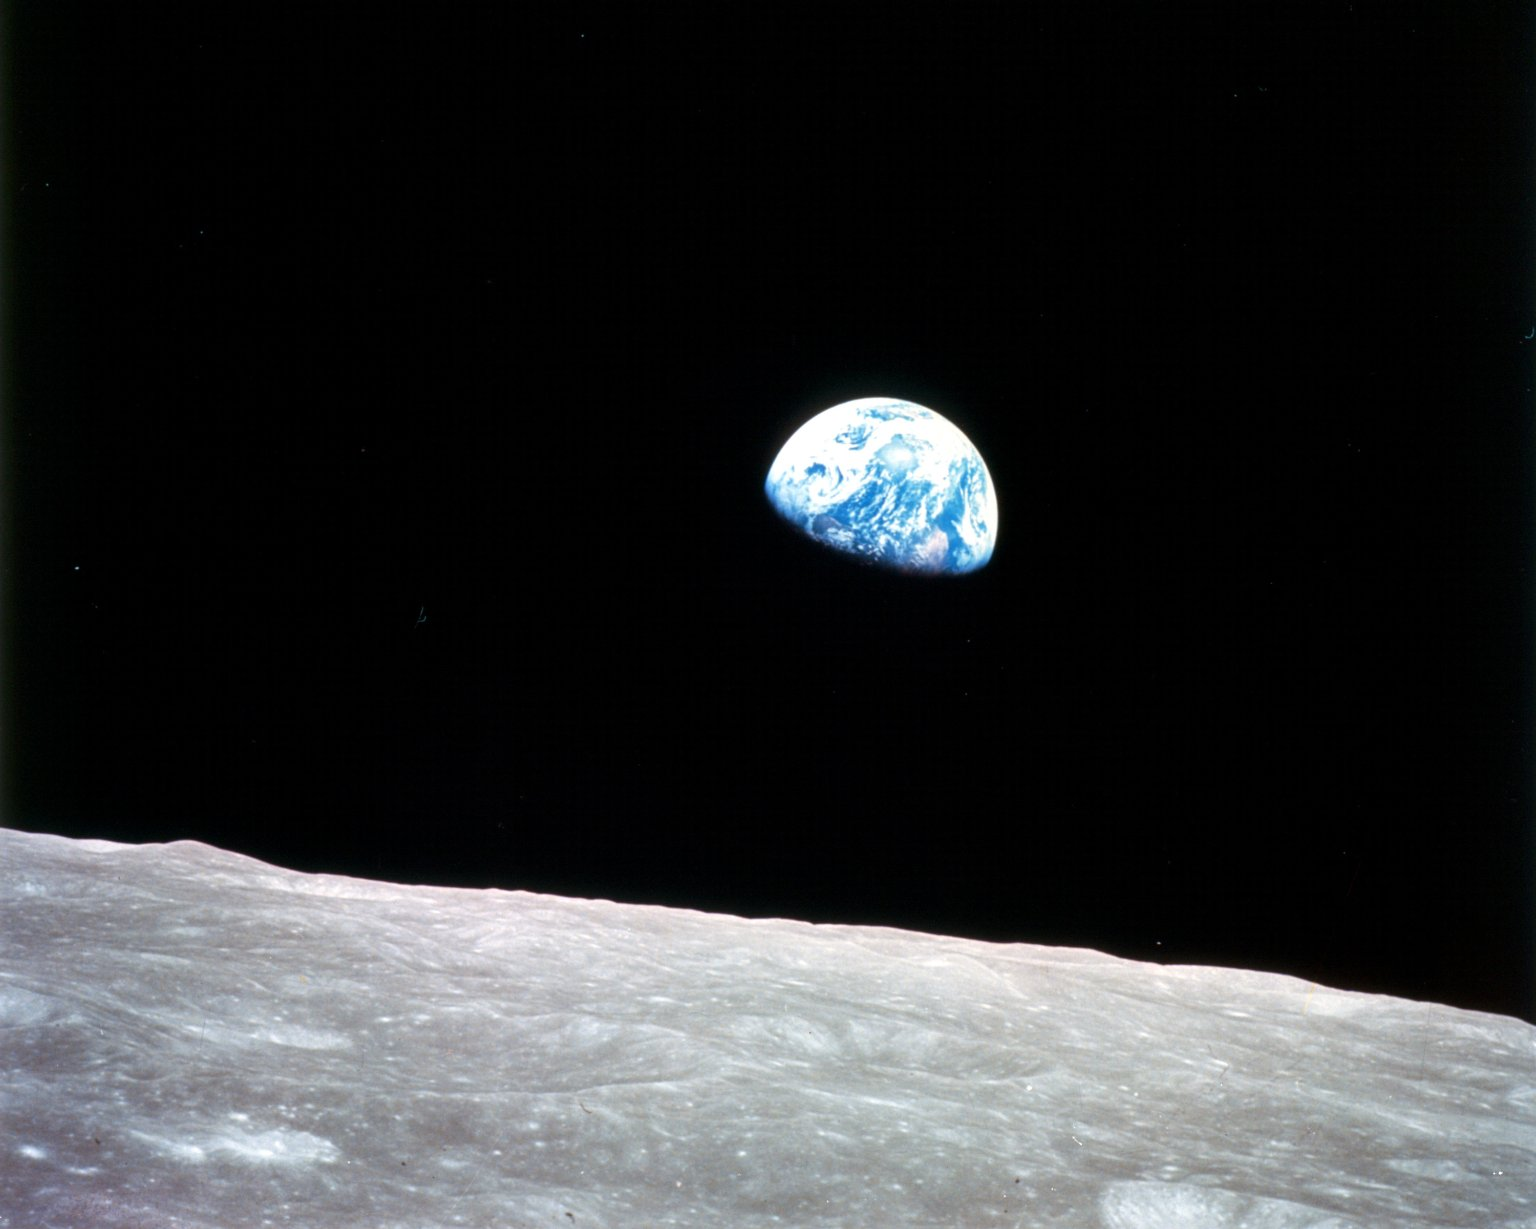 NASA Earthrise Apollo 8, taken December 29, 1968 from lunar orbit.